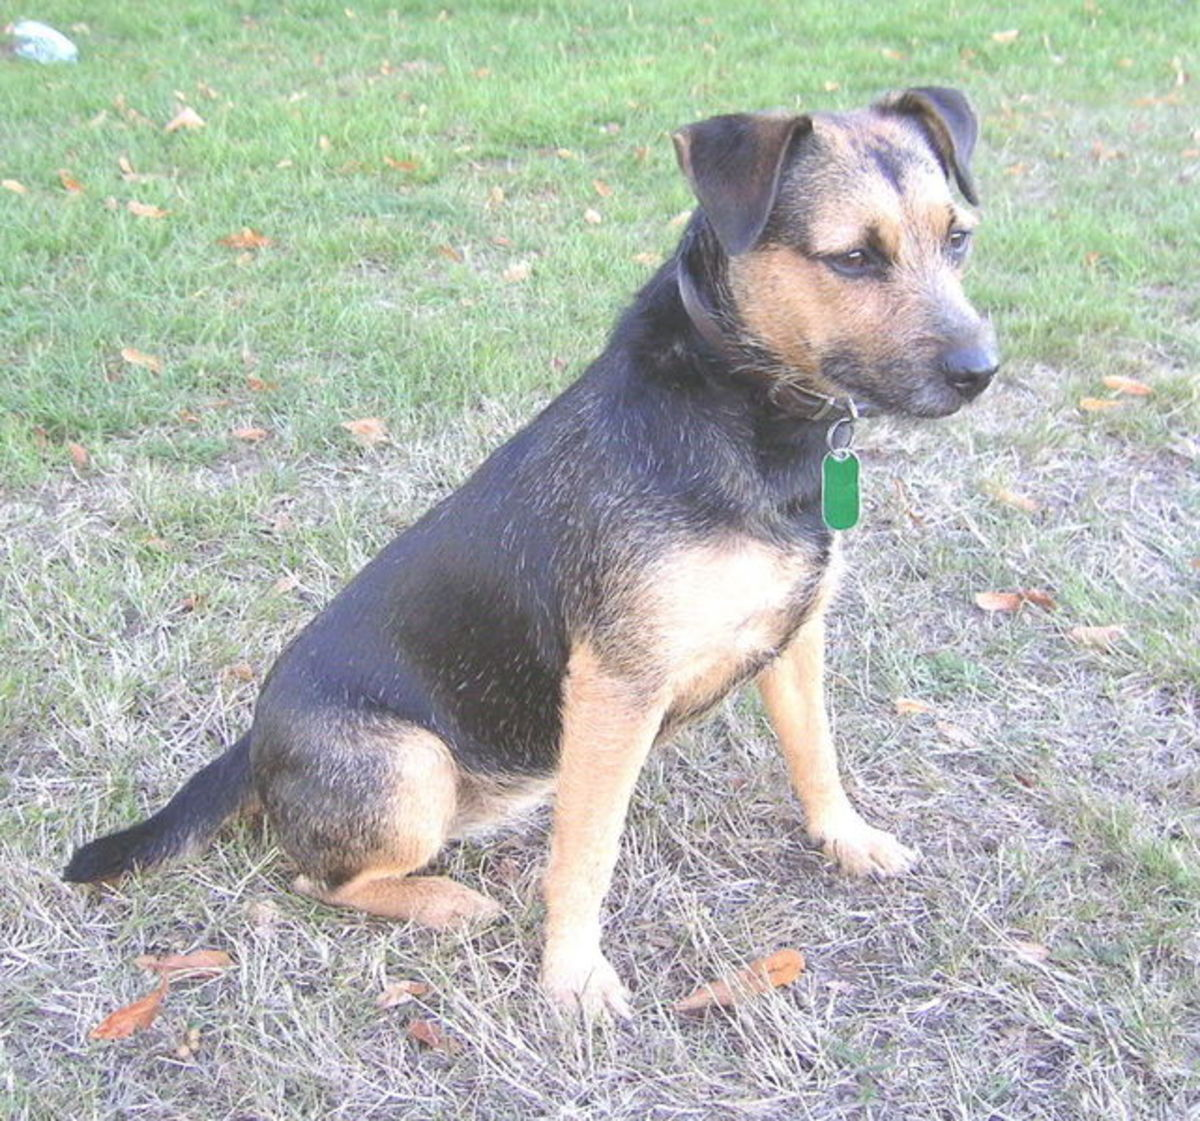 Terriers Breeds - The Black and Tan Terrier